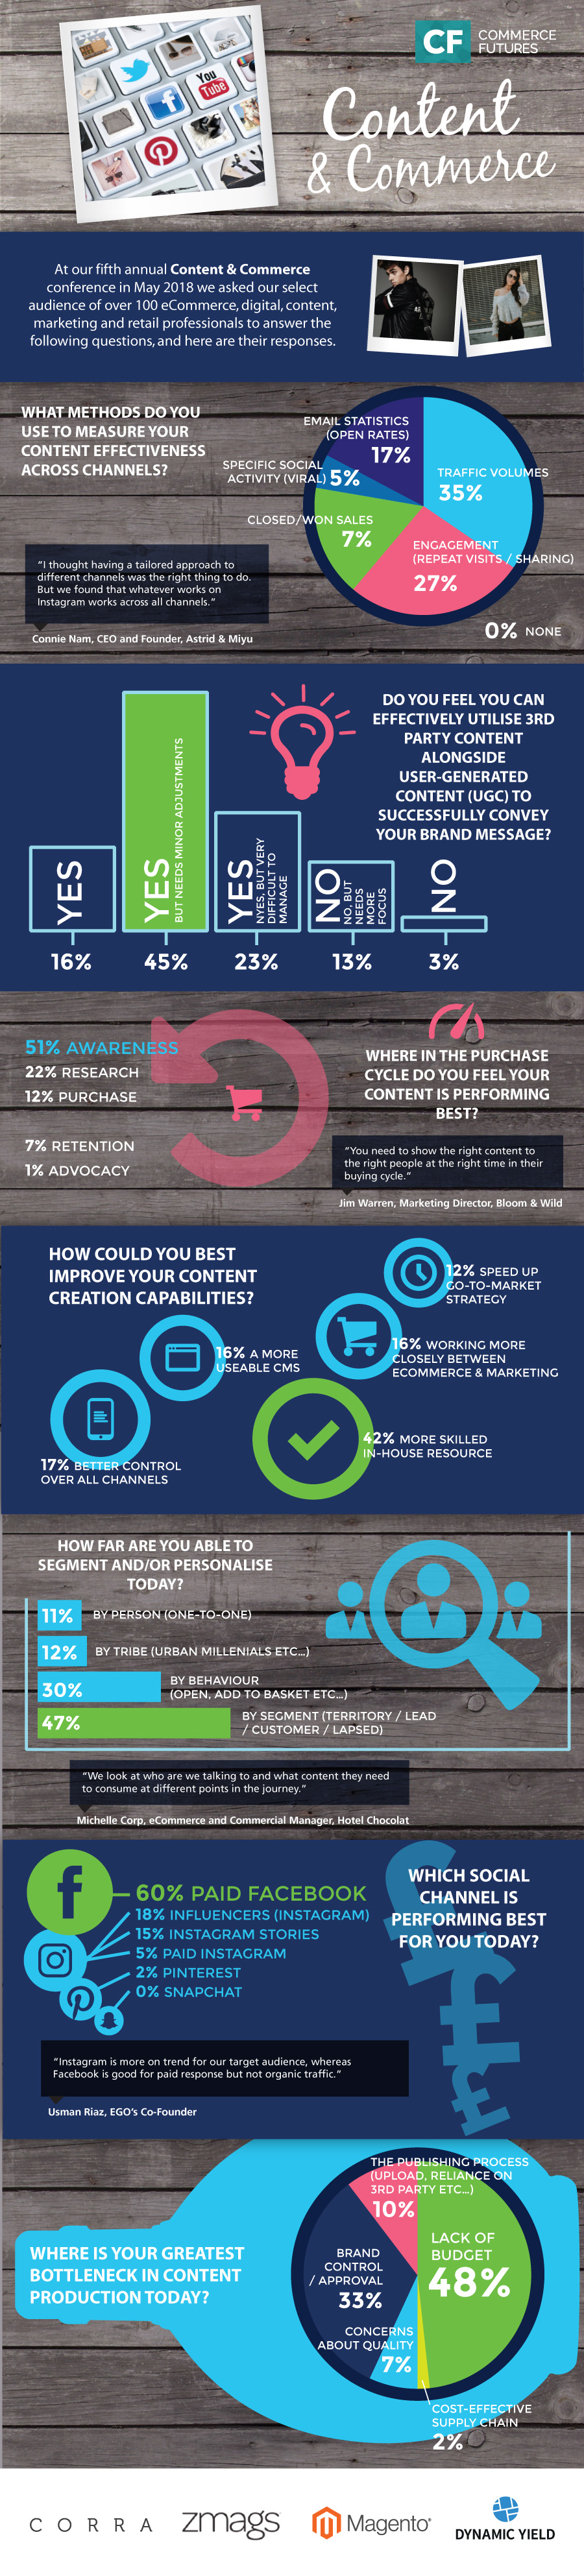 Content&Commerce-2018-Infographic.jpeg